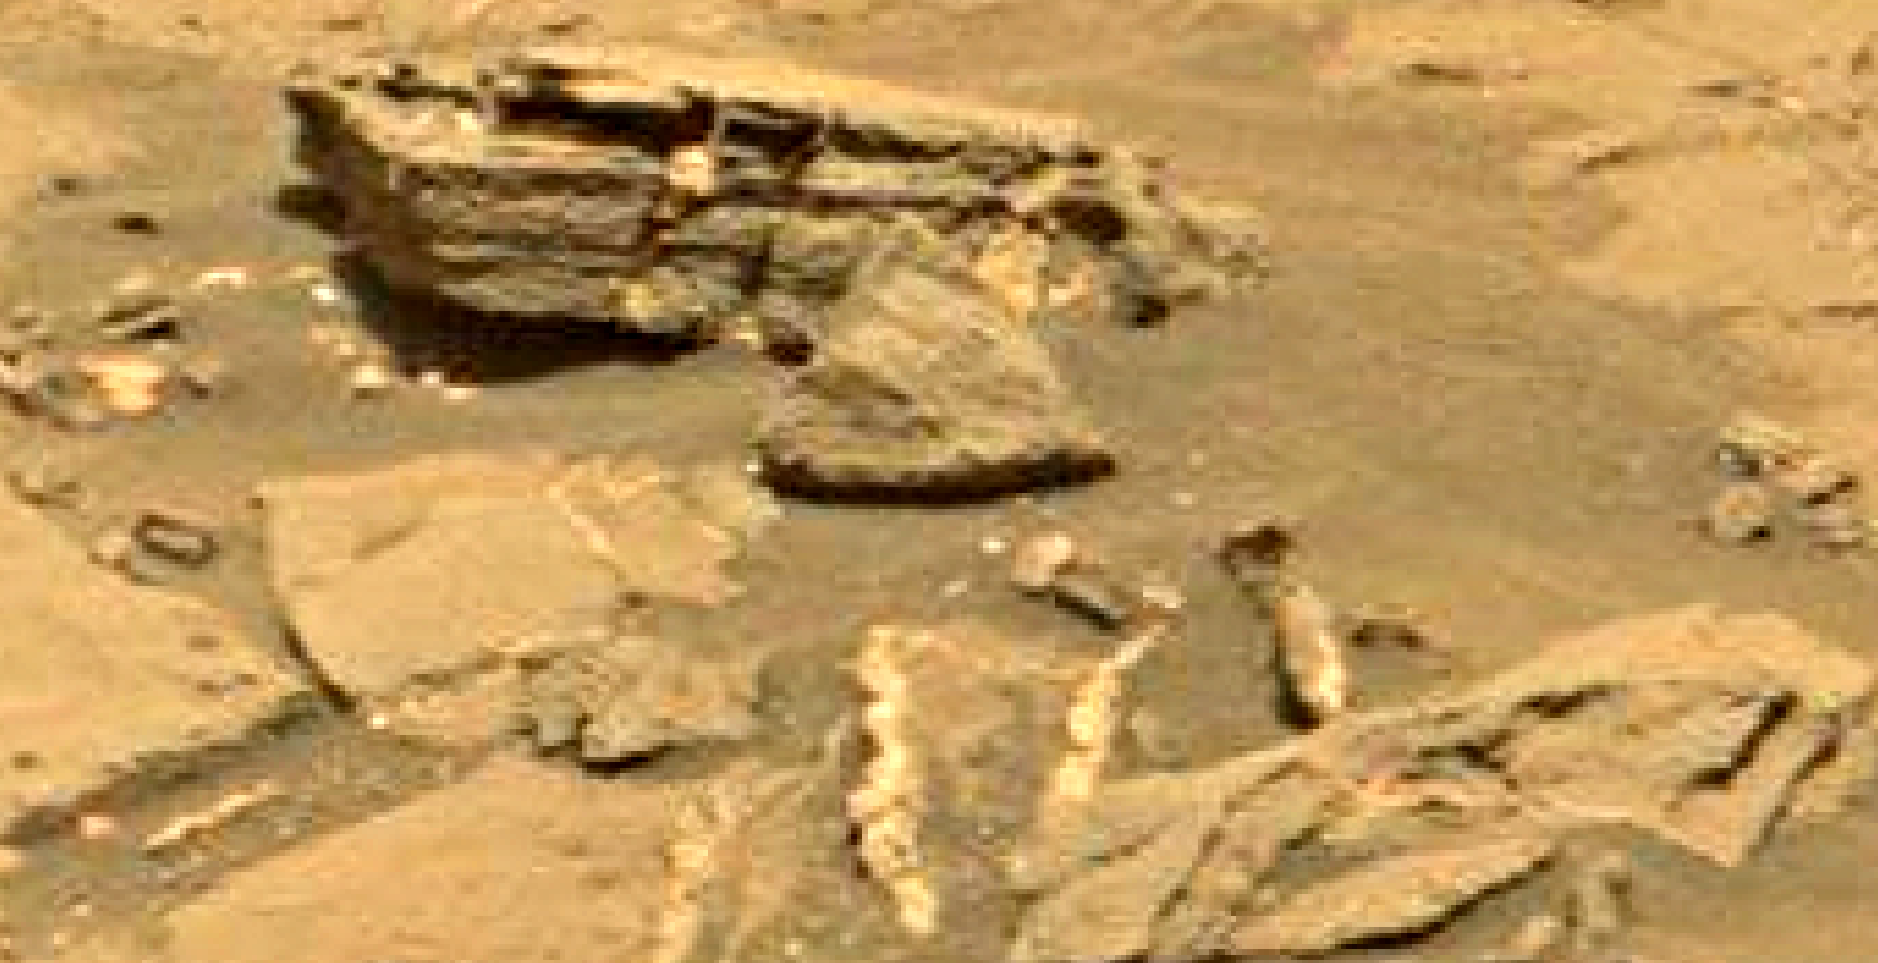 mars sol 1353 anomaly-artifacts 25 was life on mars